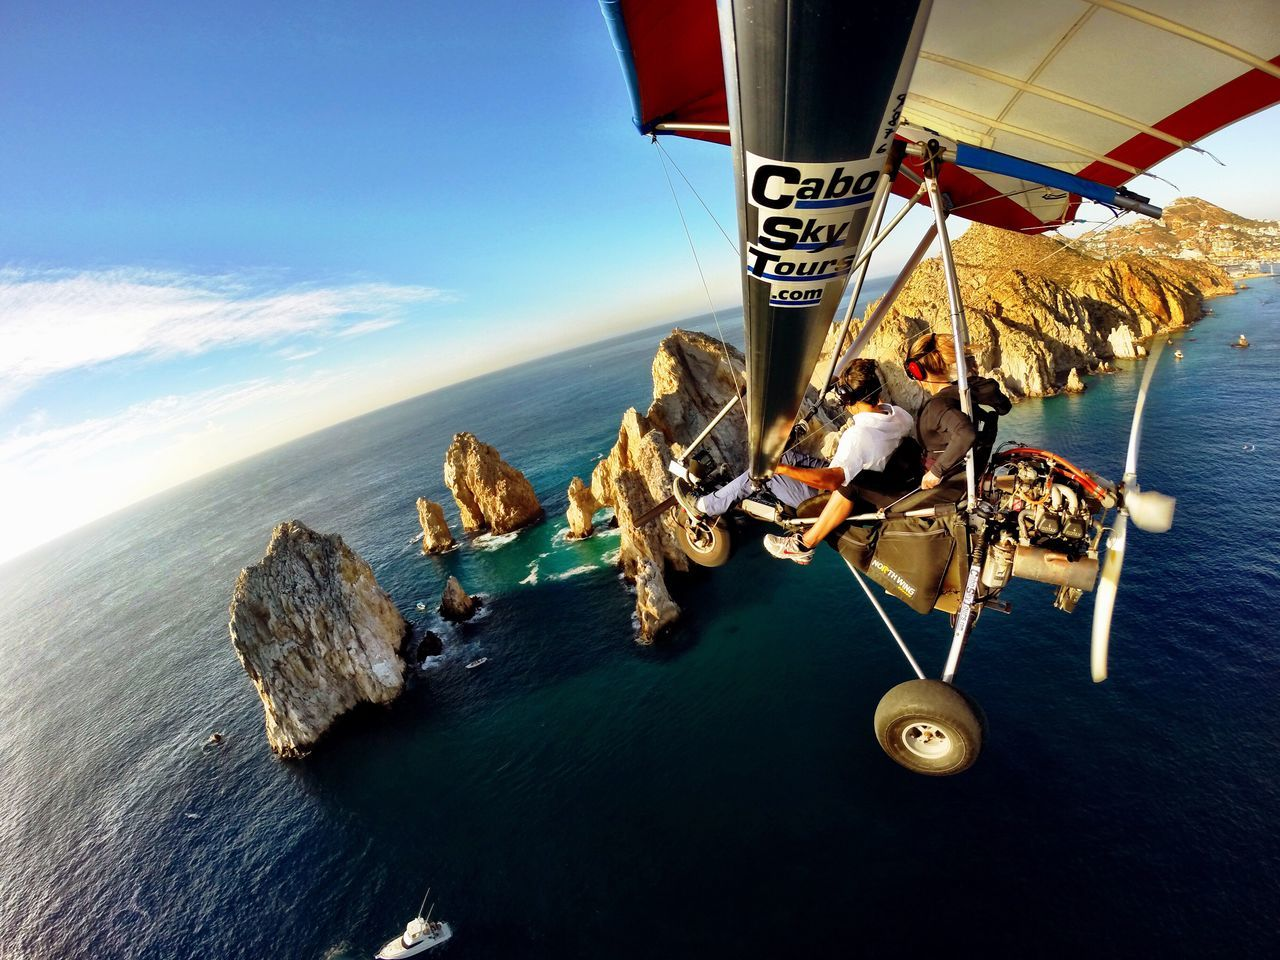 Cabo San Lucas LandsEnd Mexico Bajacalifornia LosCabos Sea Horizon Over Water Water Scenics Sky Beauty In Nature Outdoors Nature Tranquility Day Sport Skydiving Fly Away Sportextreme Adventure Adventure Time Adrenaline Junkie Adrenaline Determination Travel